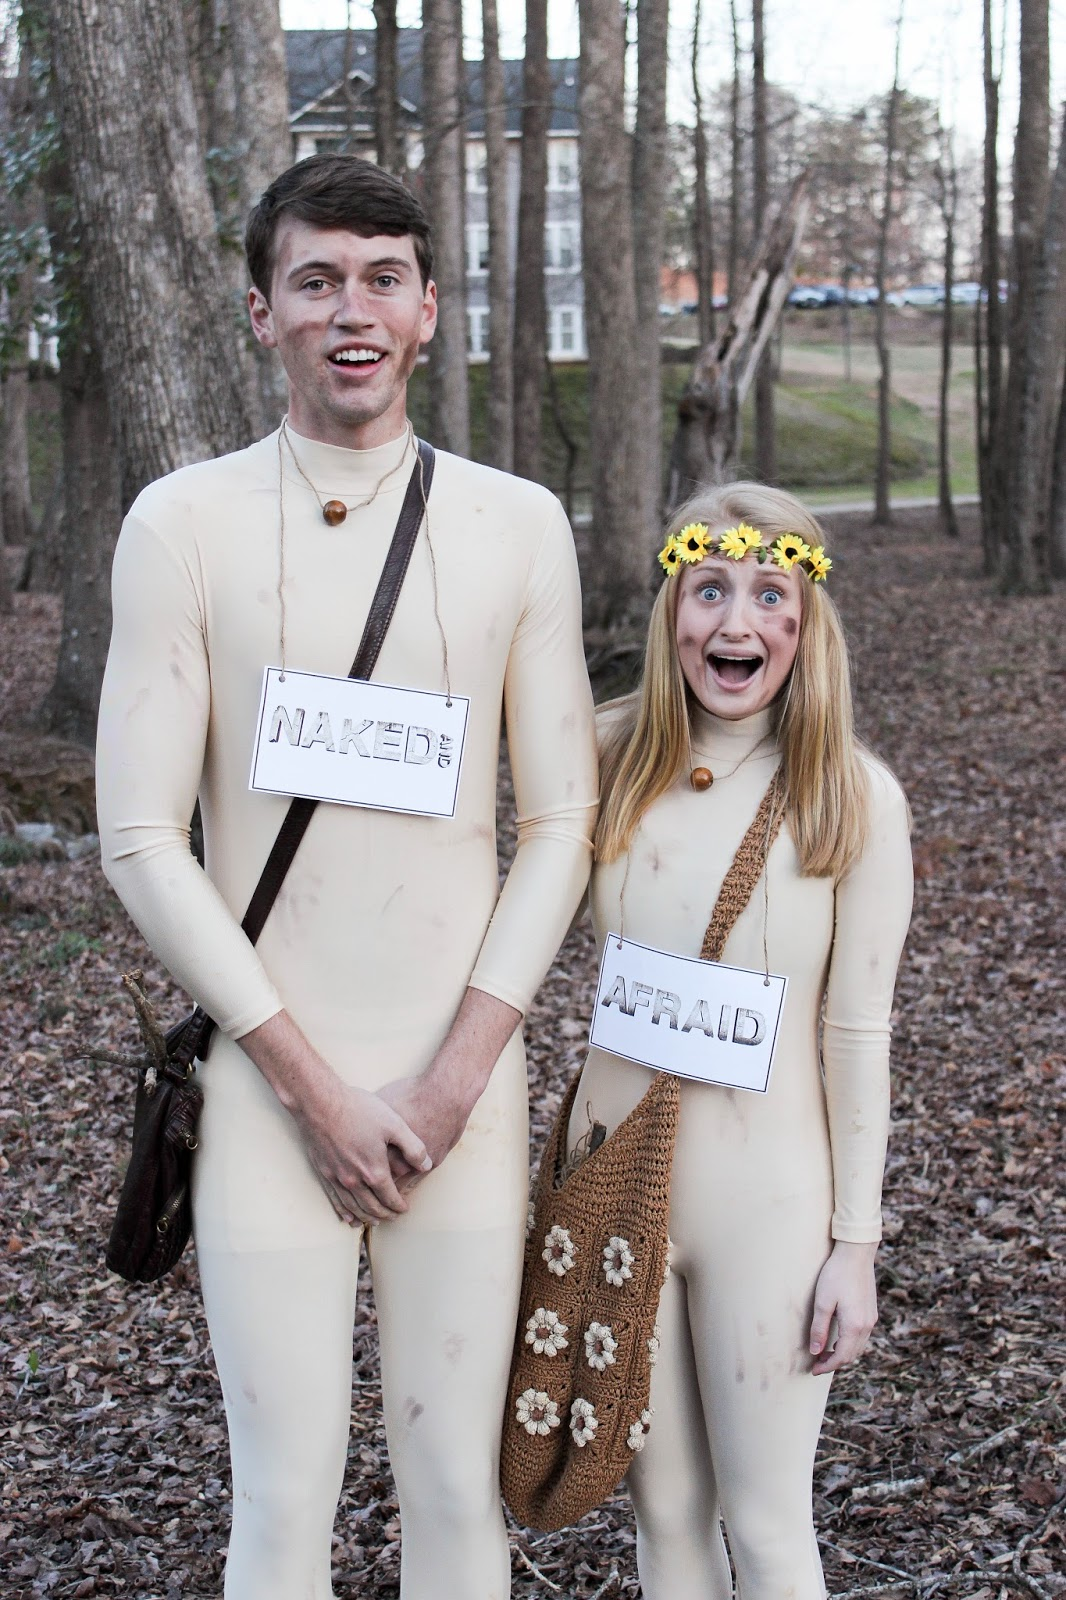 Halloween costumes and naked remarkable, rather